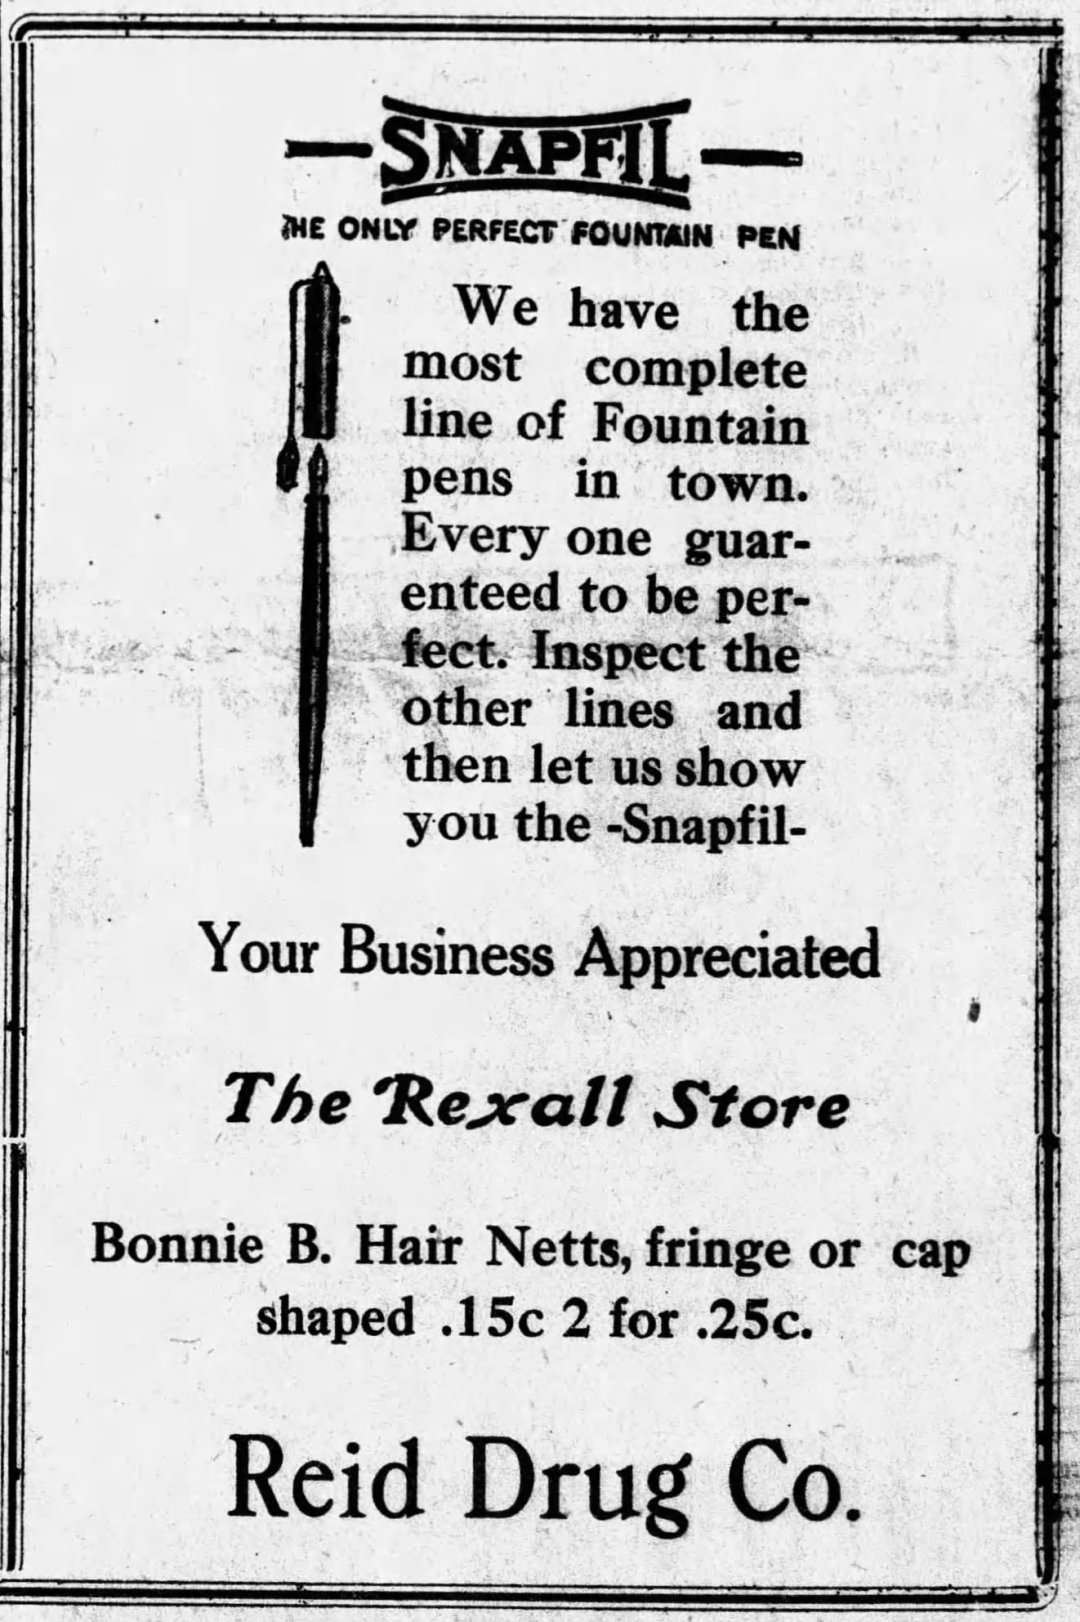 Snapfil Ad - September 9, 1920 - from the Atmore Record in Atmore, Alabama